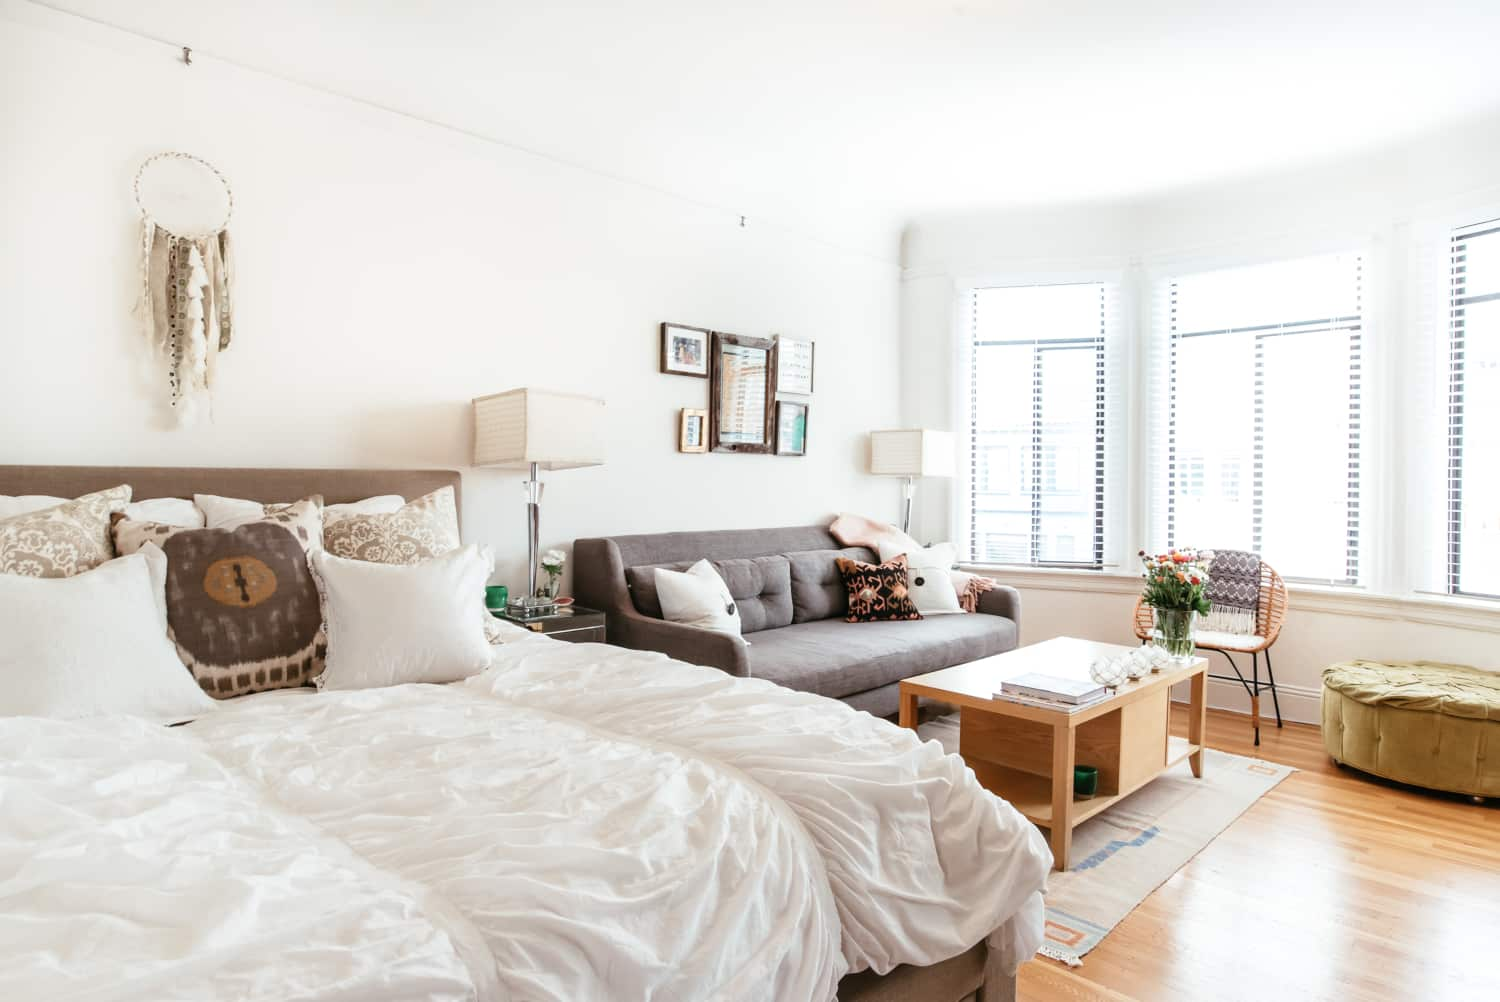 The 10 Commandments of Small Space Living | Apartment Therapy